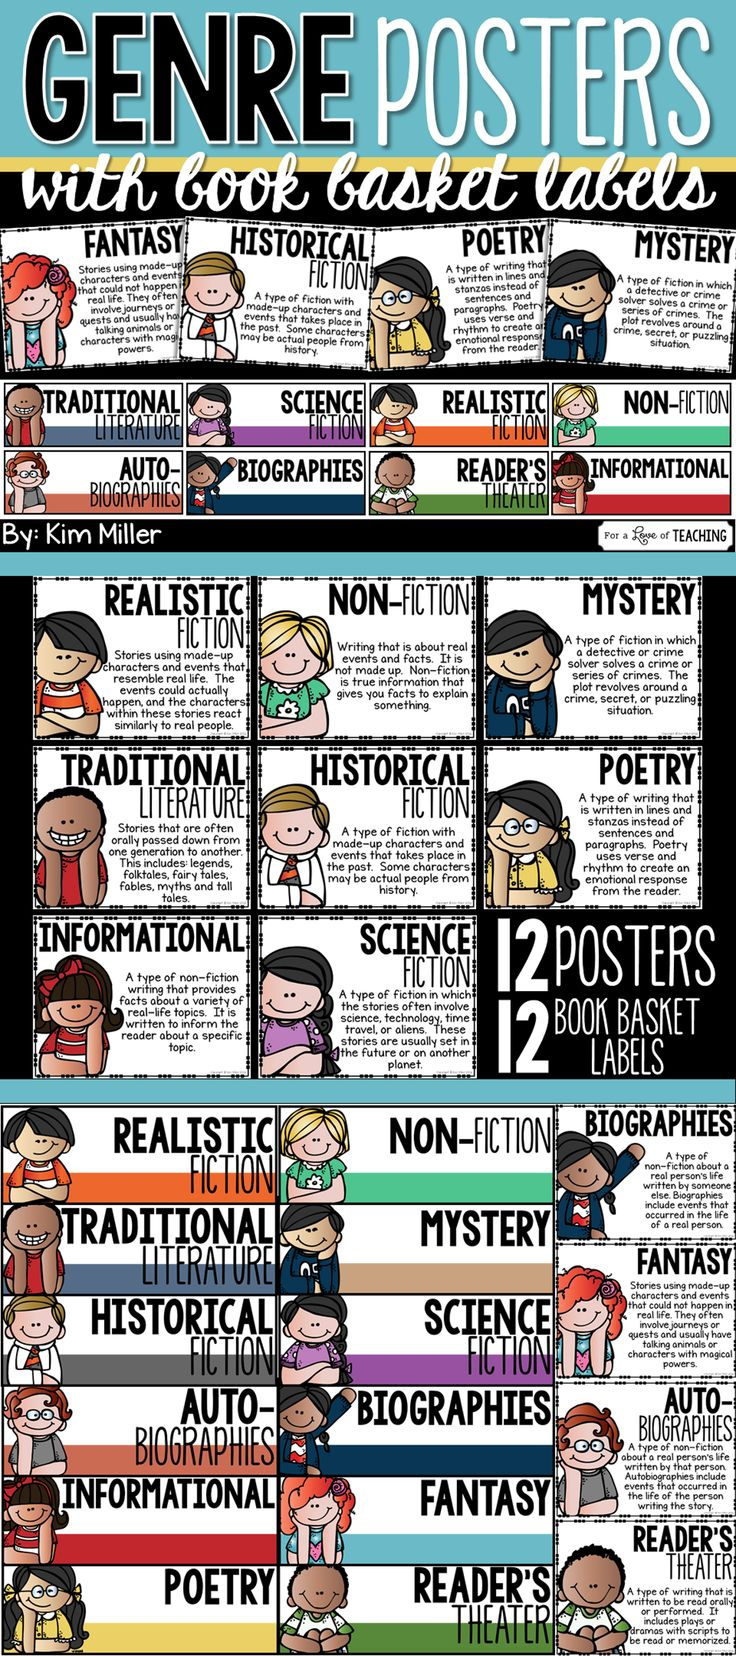 12 genre posters with 12 matching book basket labels